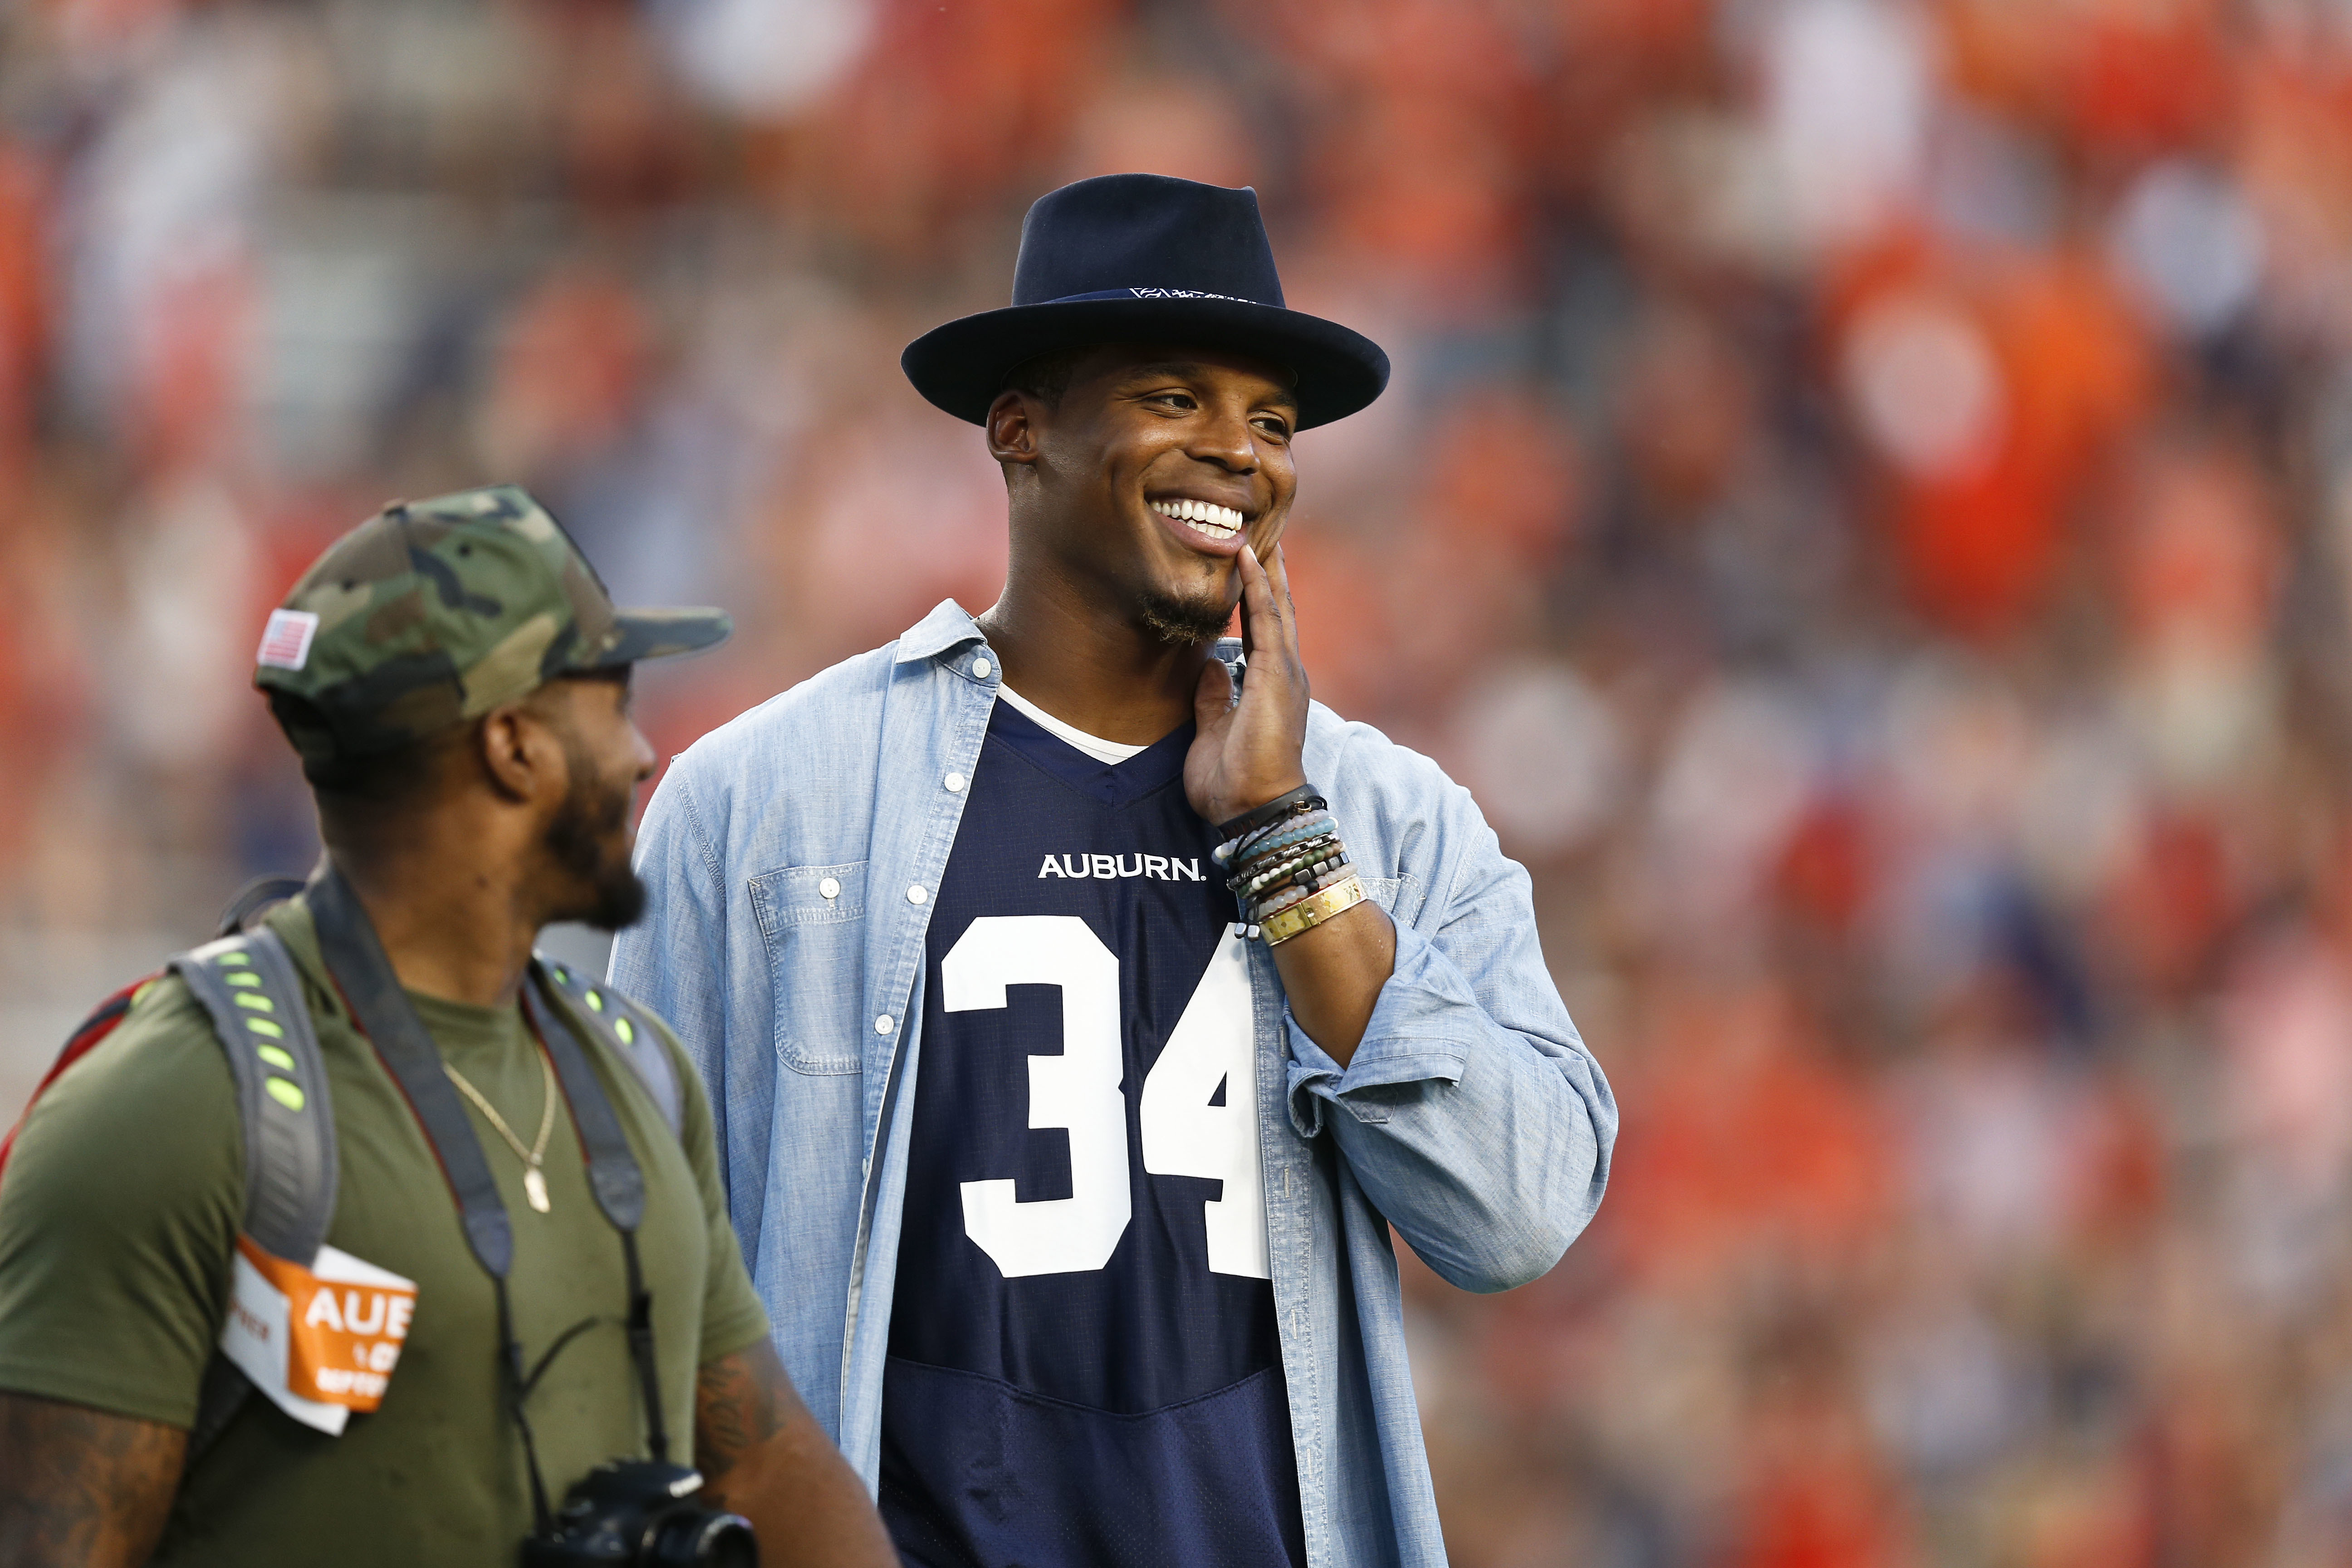 Carolina Panthers quarterback Cam Newton smiles as he watches Auburn and Clemson players warm up for an NCAA college football game, Saturday, Sept. 3, 2016, in Auburn, Ala. (AP Photo/Brynn Anderson)